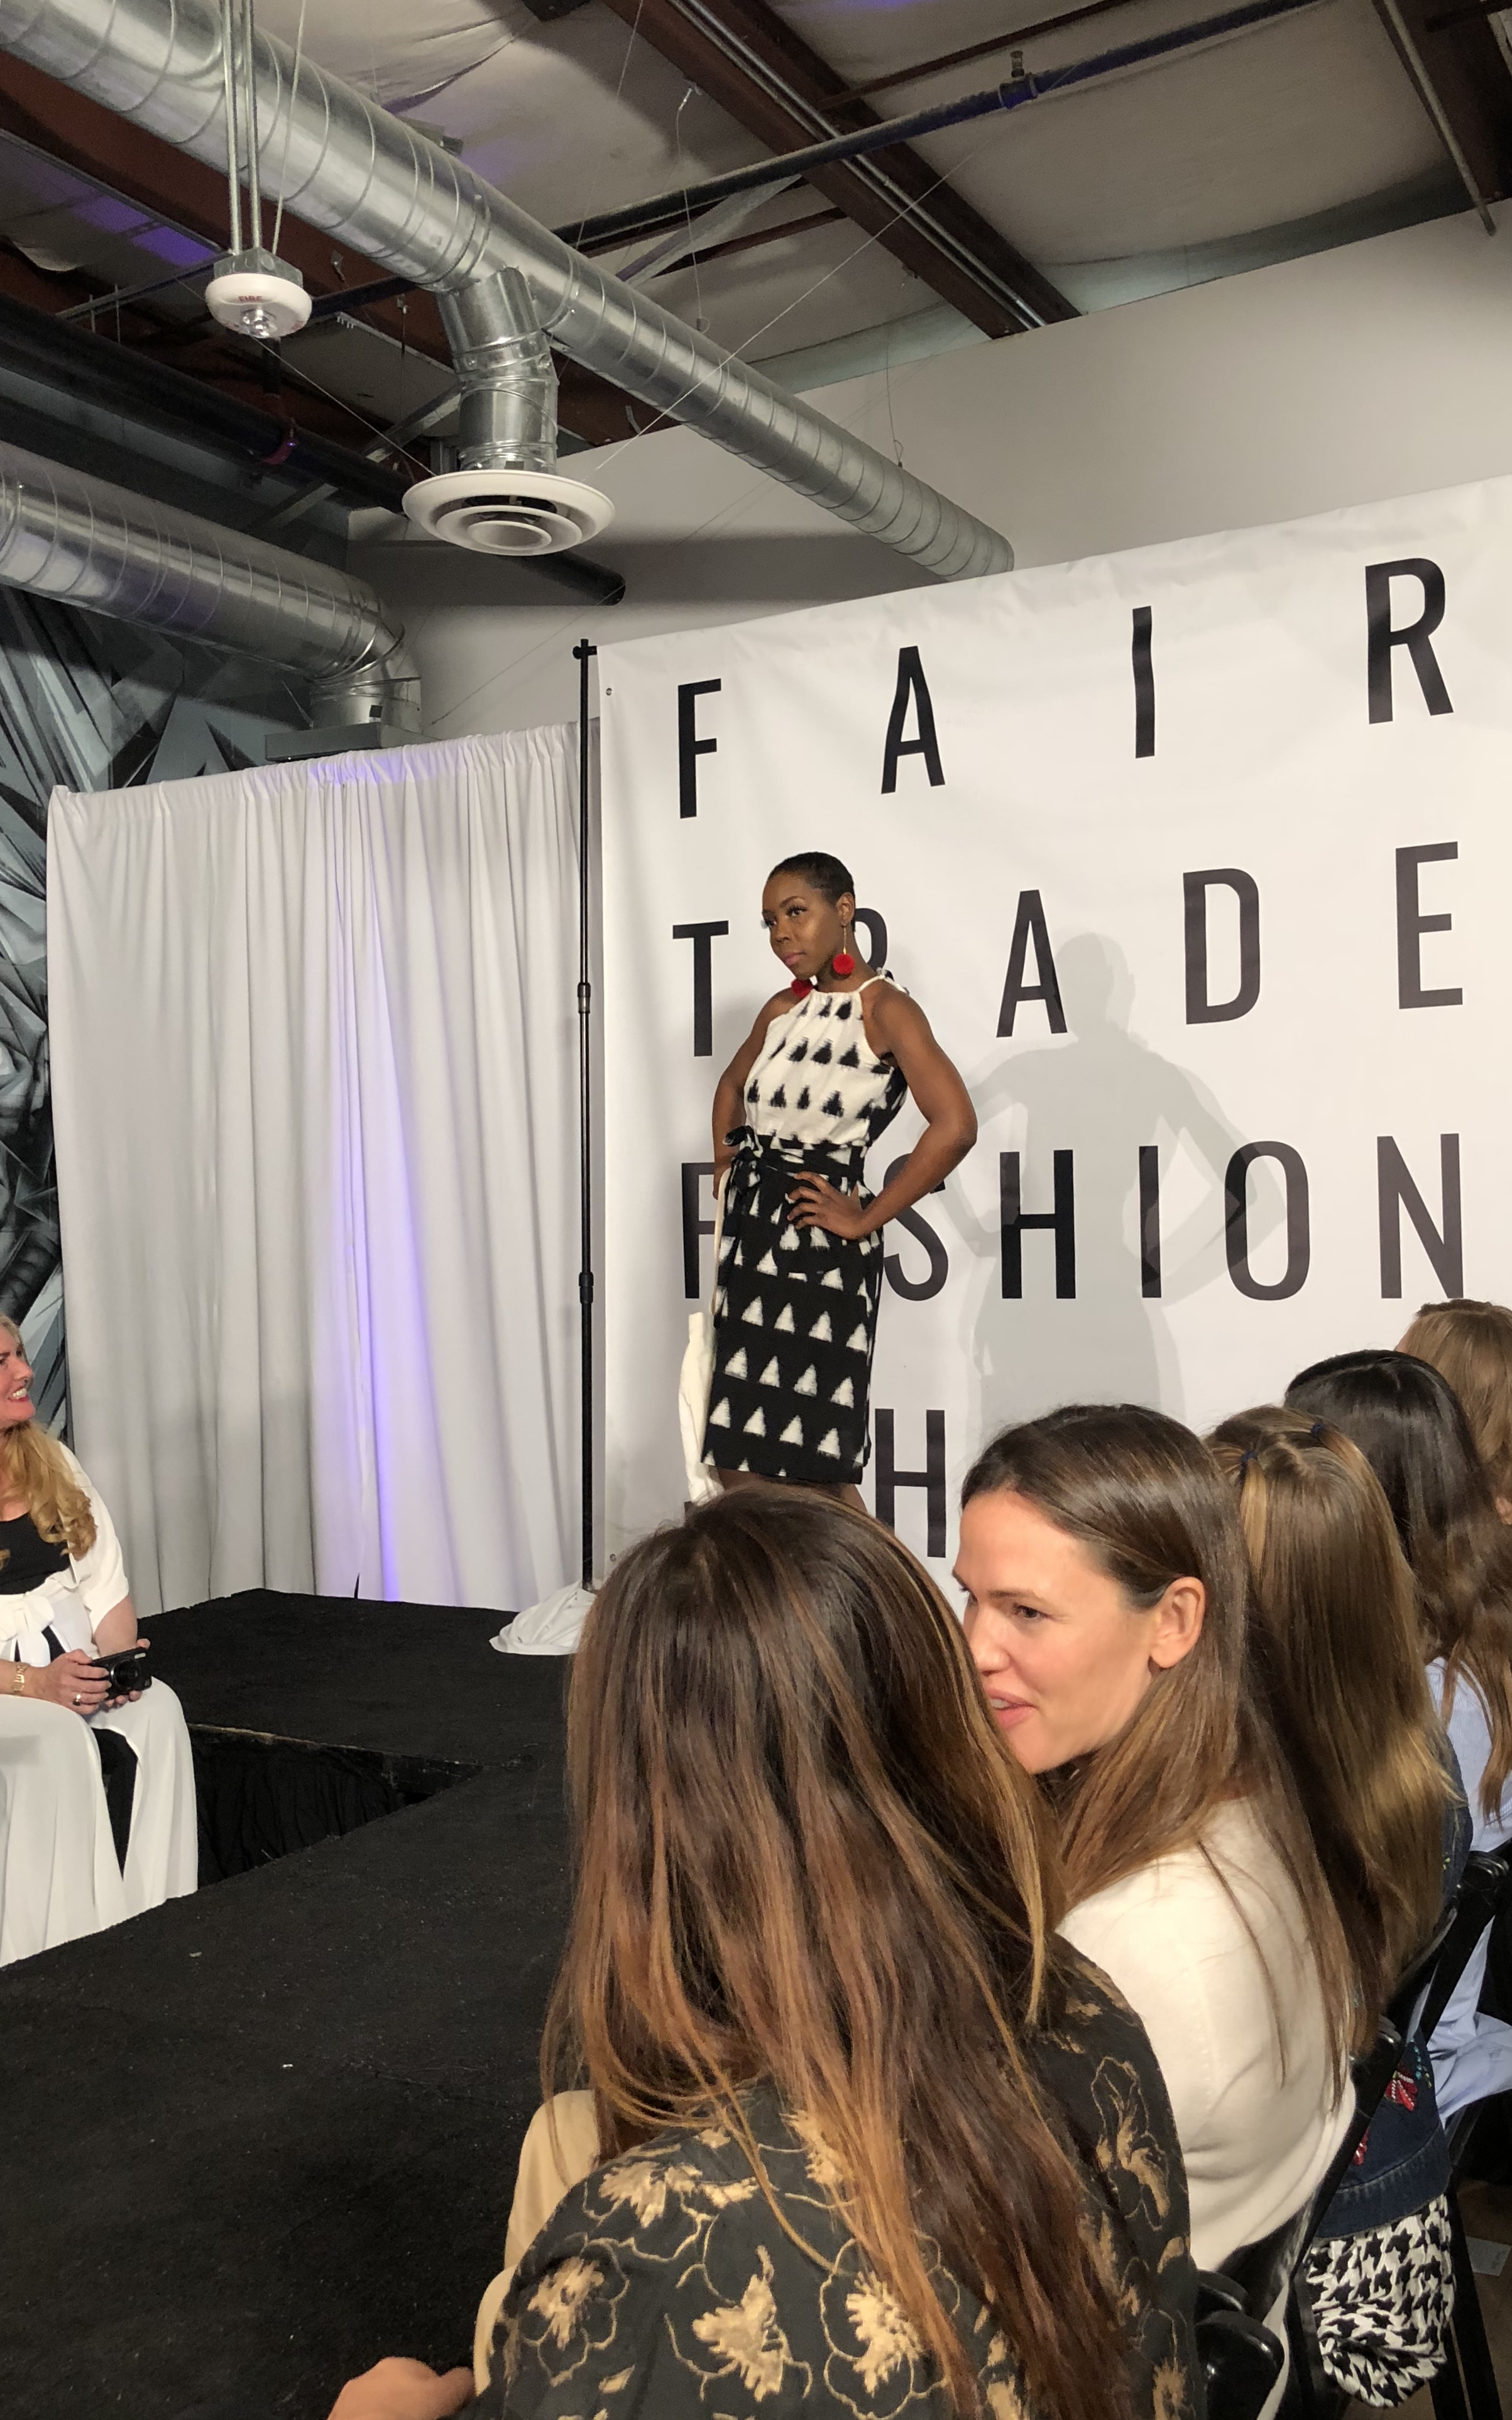 Fair Trade Fashion Show in LA